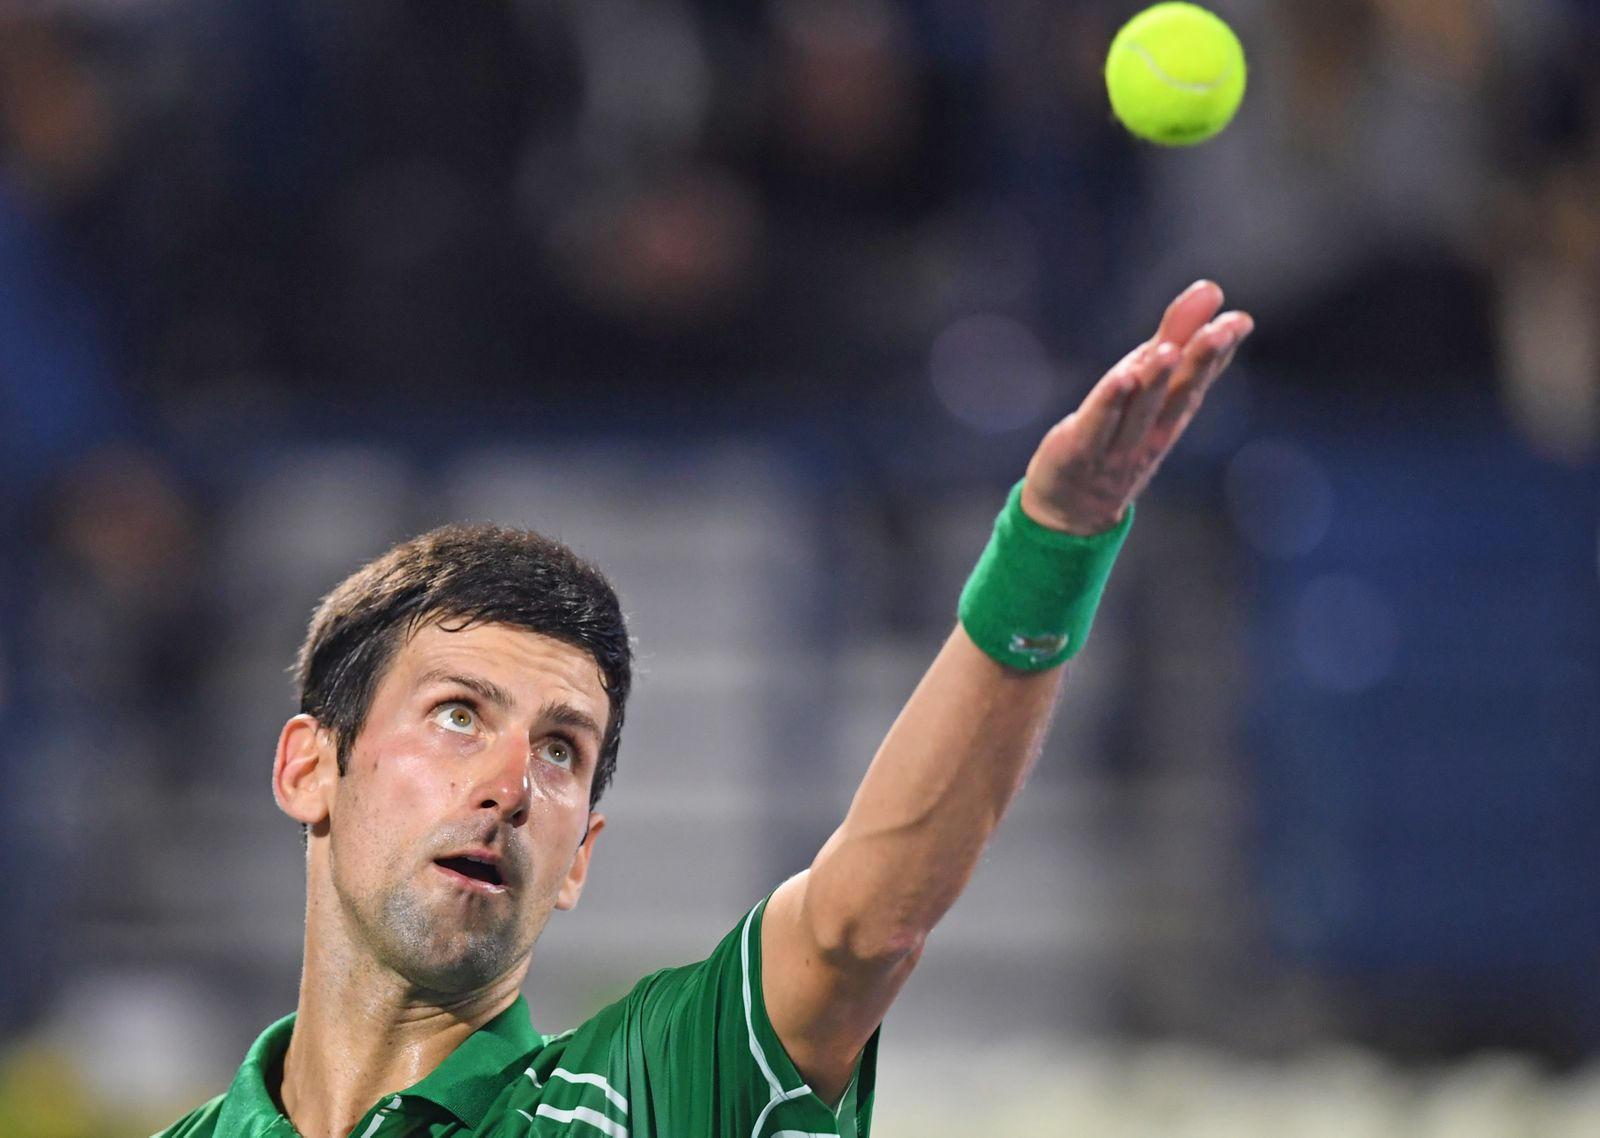 FILES-TENNIS-US-OPEN-DJOKOVIC